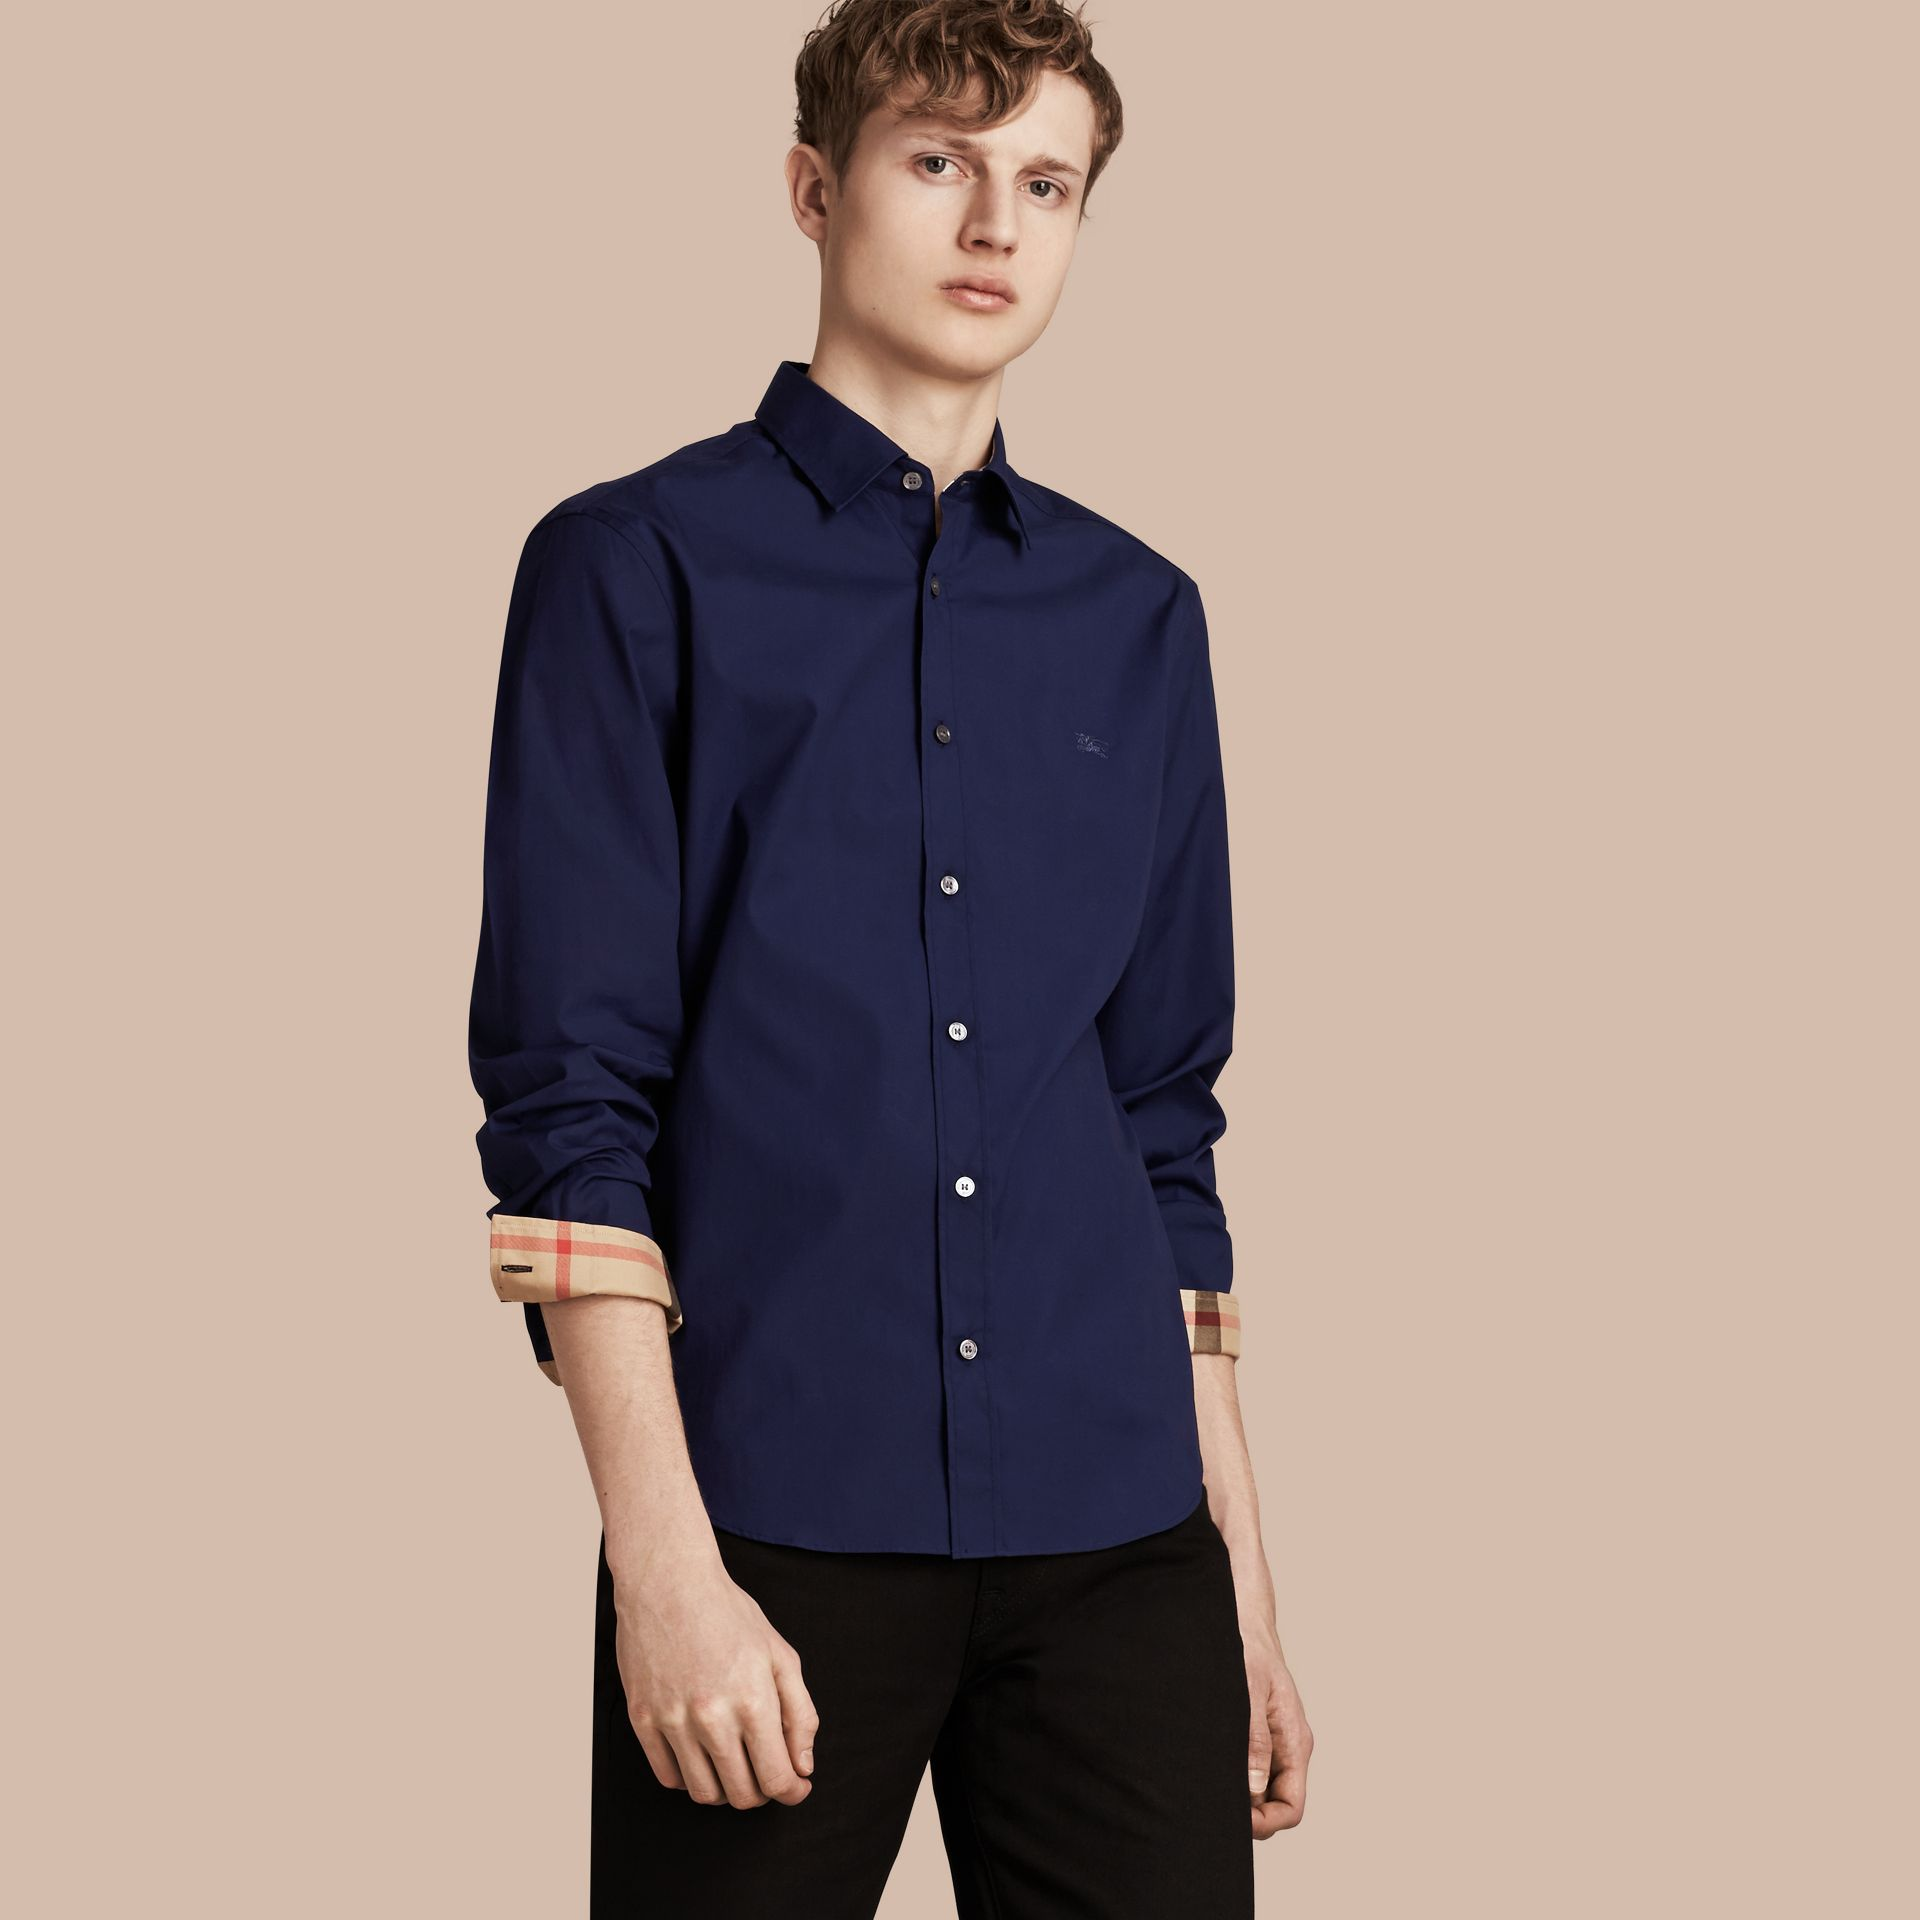 Indigo blue Check Detail Stretch Cotton Poplin Shirt Indigo Blue - gallery image 1